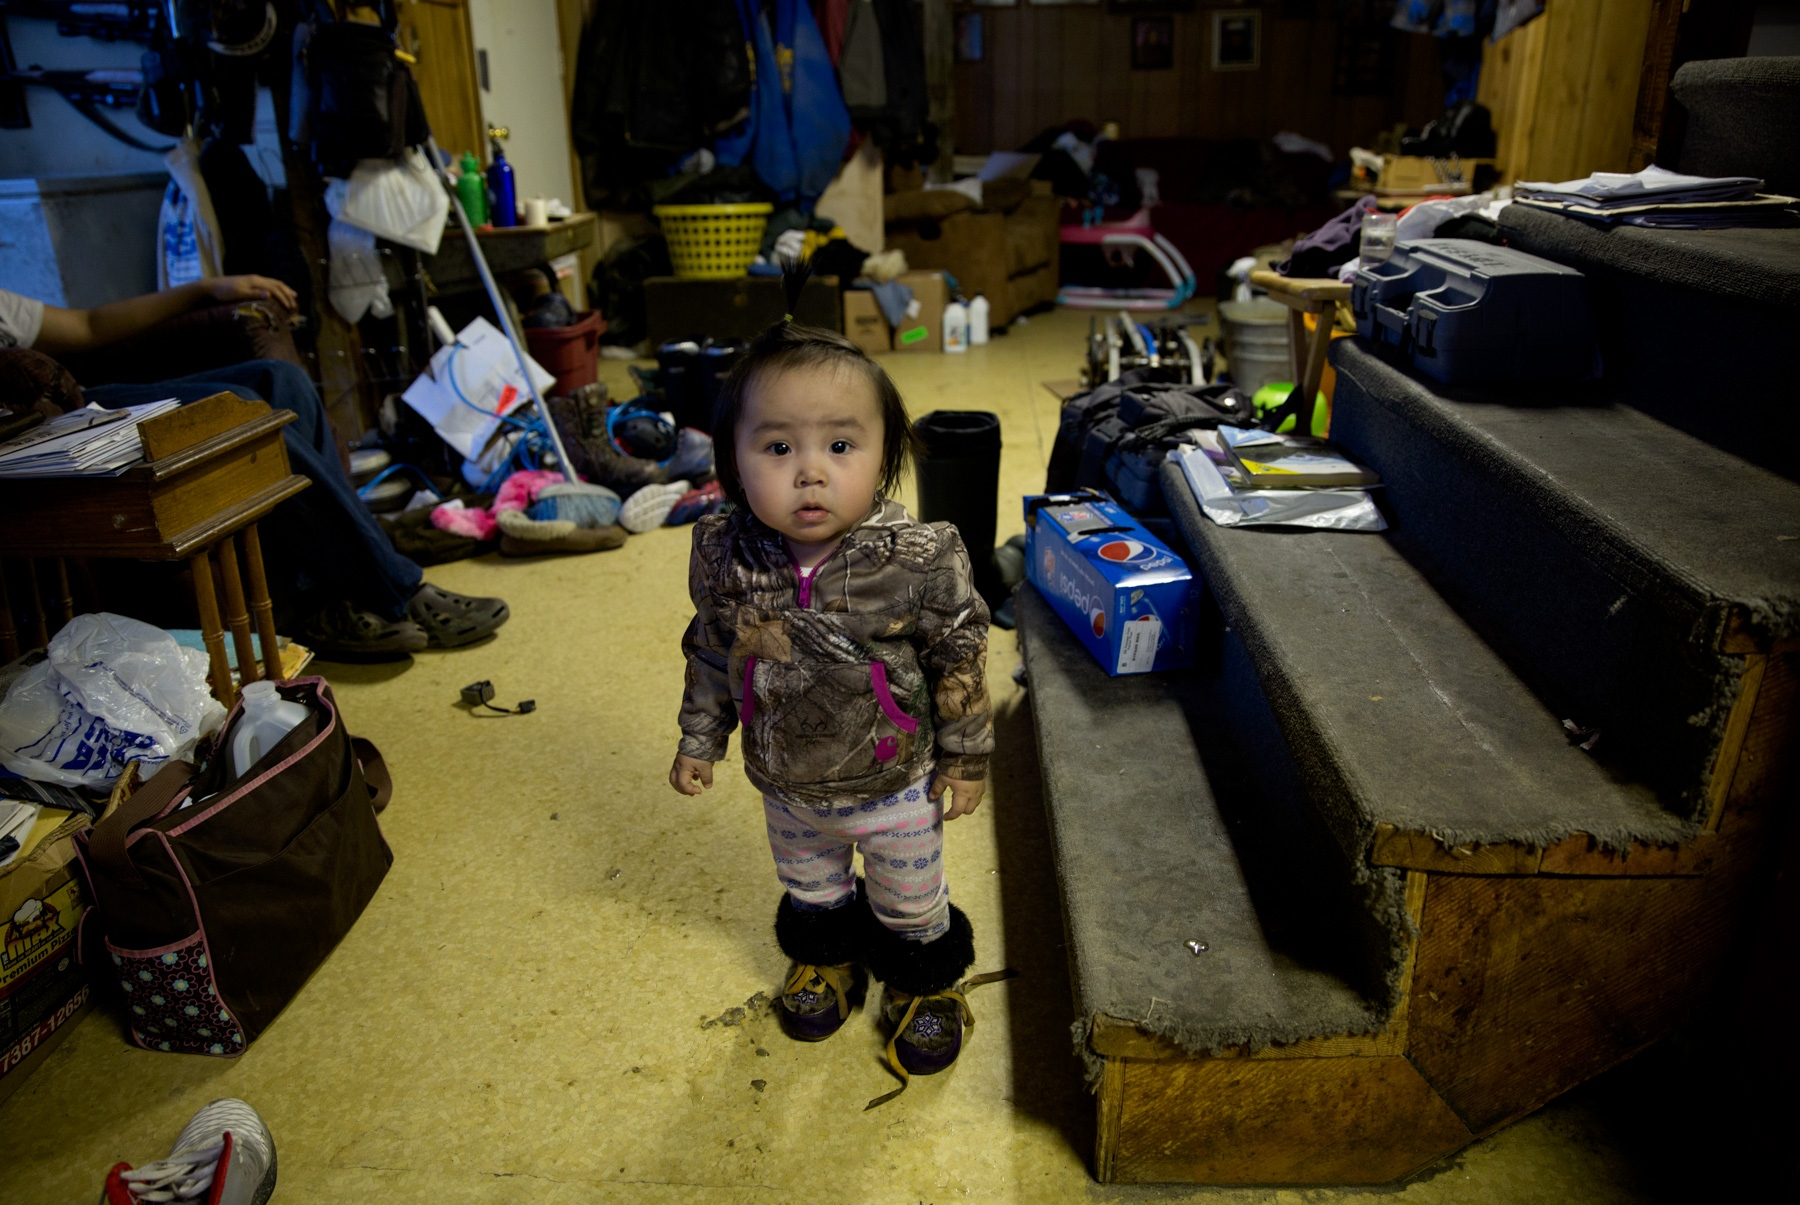 Marie, one year old, is one of the toddlers in Shishmaref, Alaska. Residents in Shishmaref, Alaska face an uncertain future. The island is sinking due to melting of the permafrost upon which it is located and the rising water levels due to climate change. Predictably, the Island will disappear within the next ten to twenty years. As of now, there are no solid plans for relocation of the village and its residents.